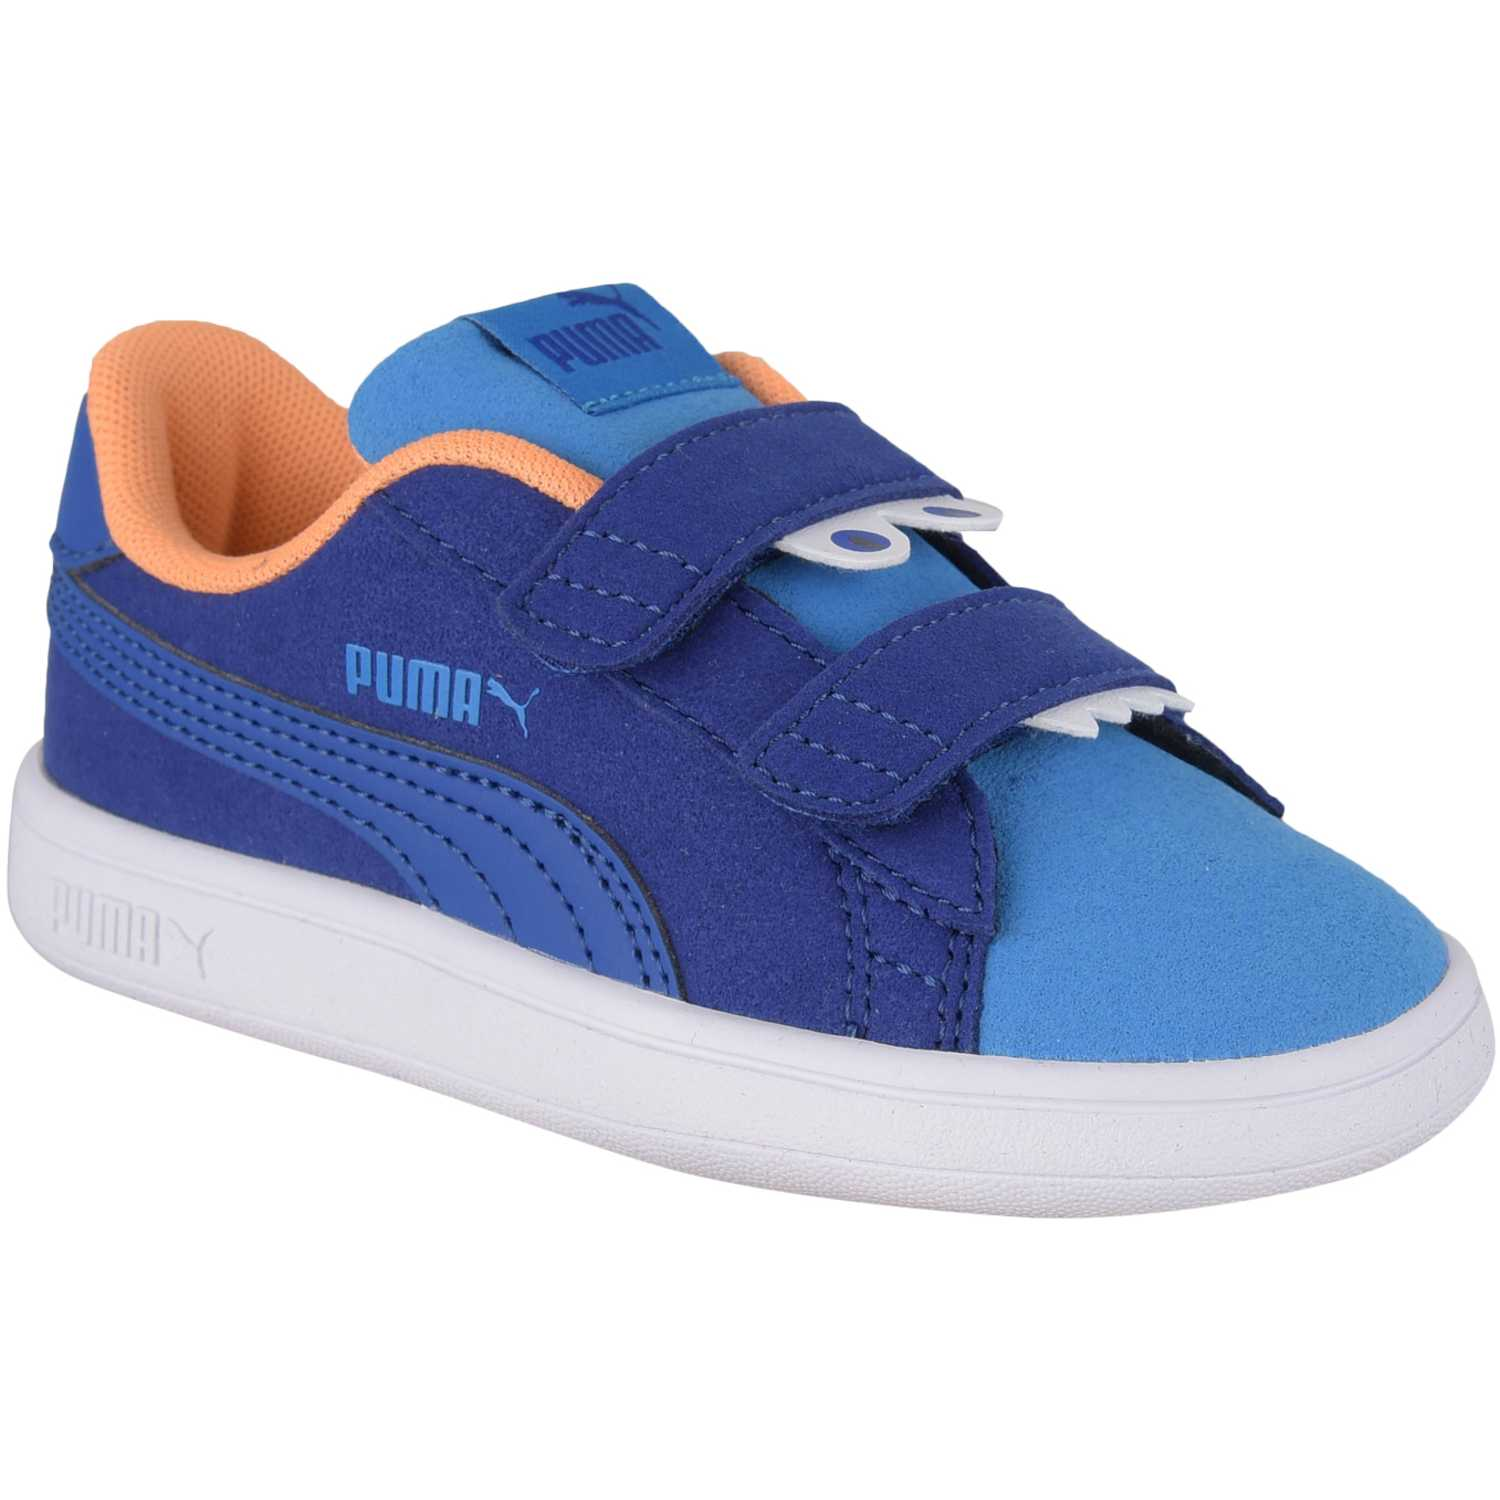 Puma puma smash v2 monster v inf Azul / celeste Walking